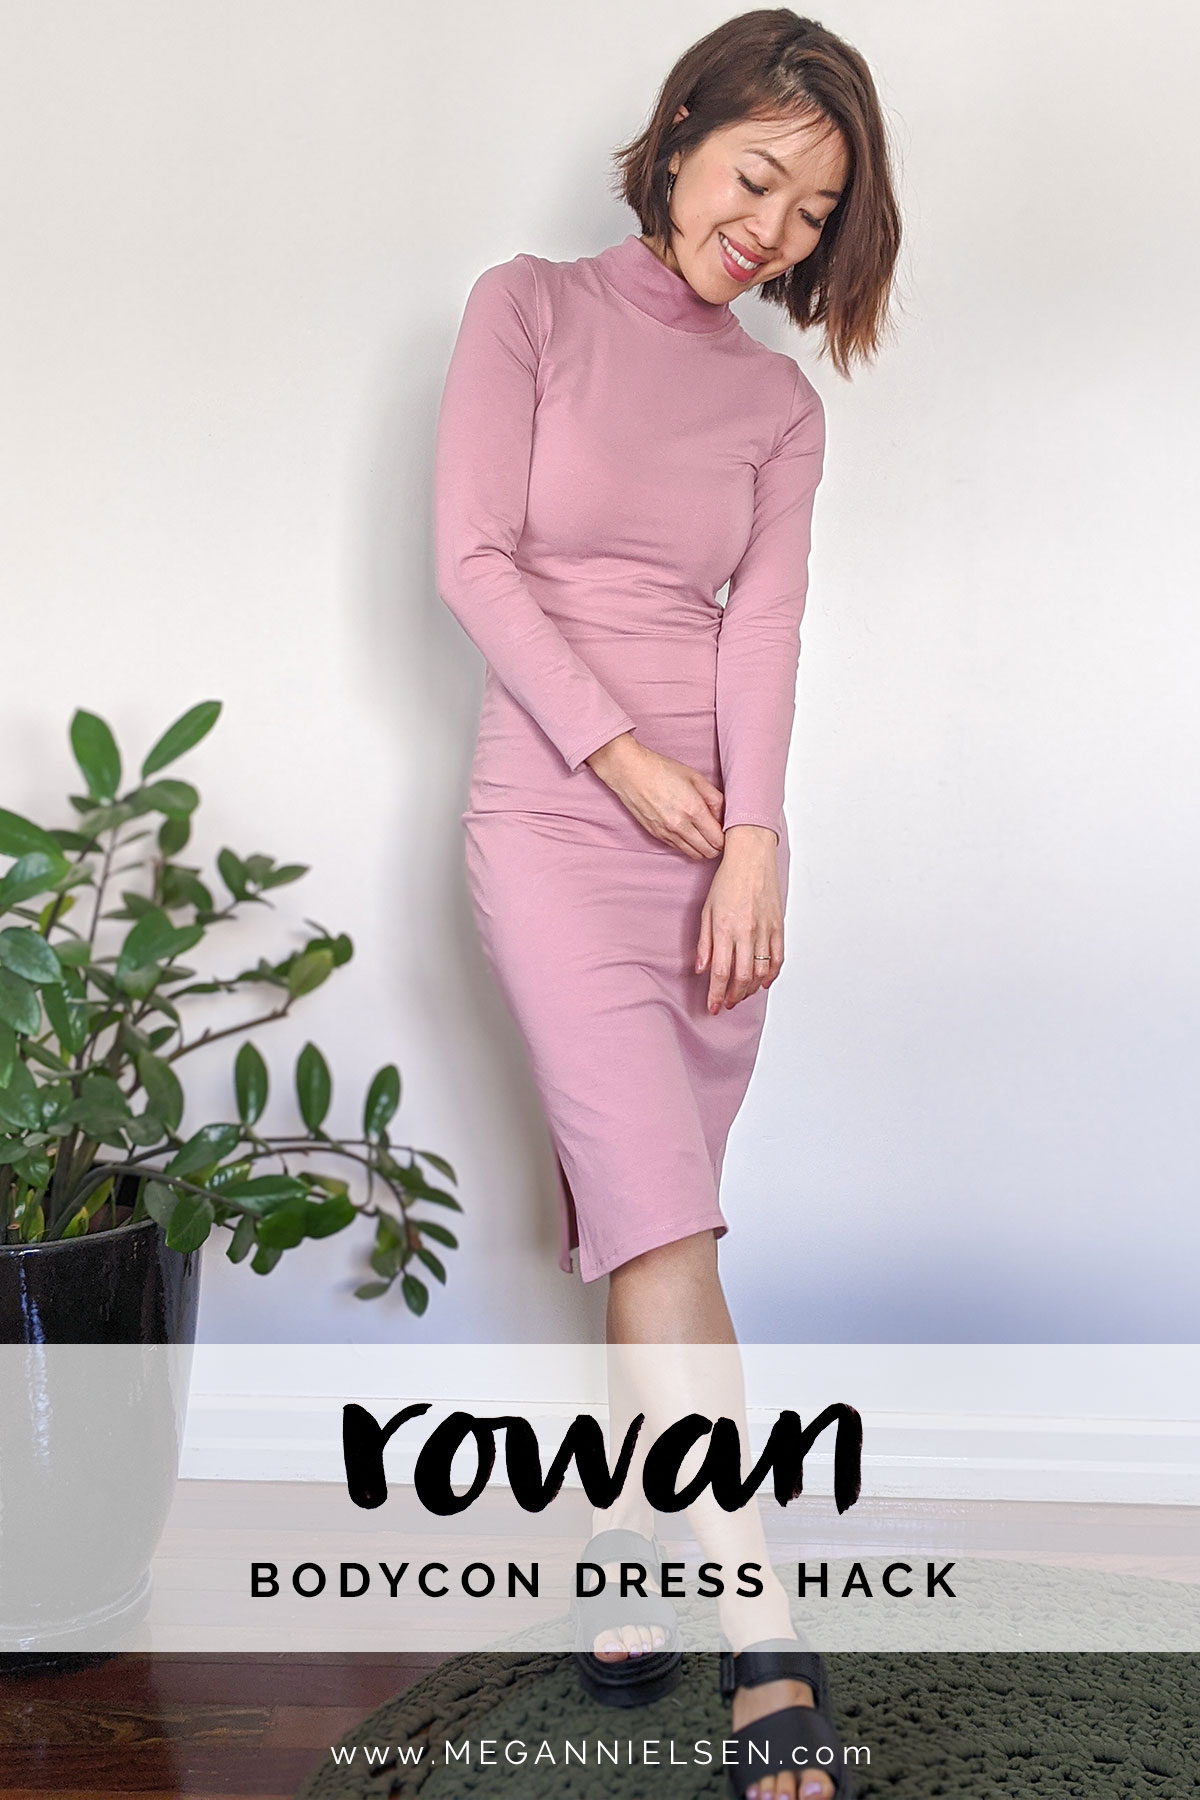 Hacking your Rowan pattern into a bodycon dress!